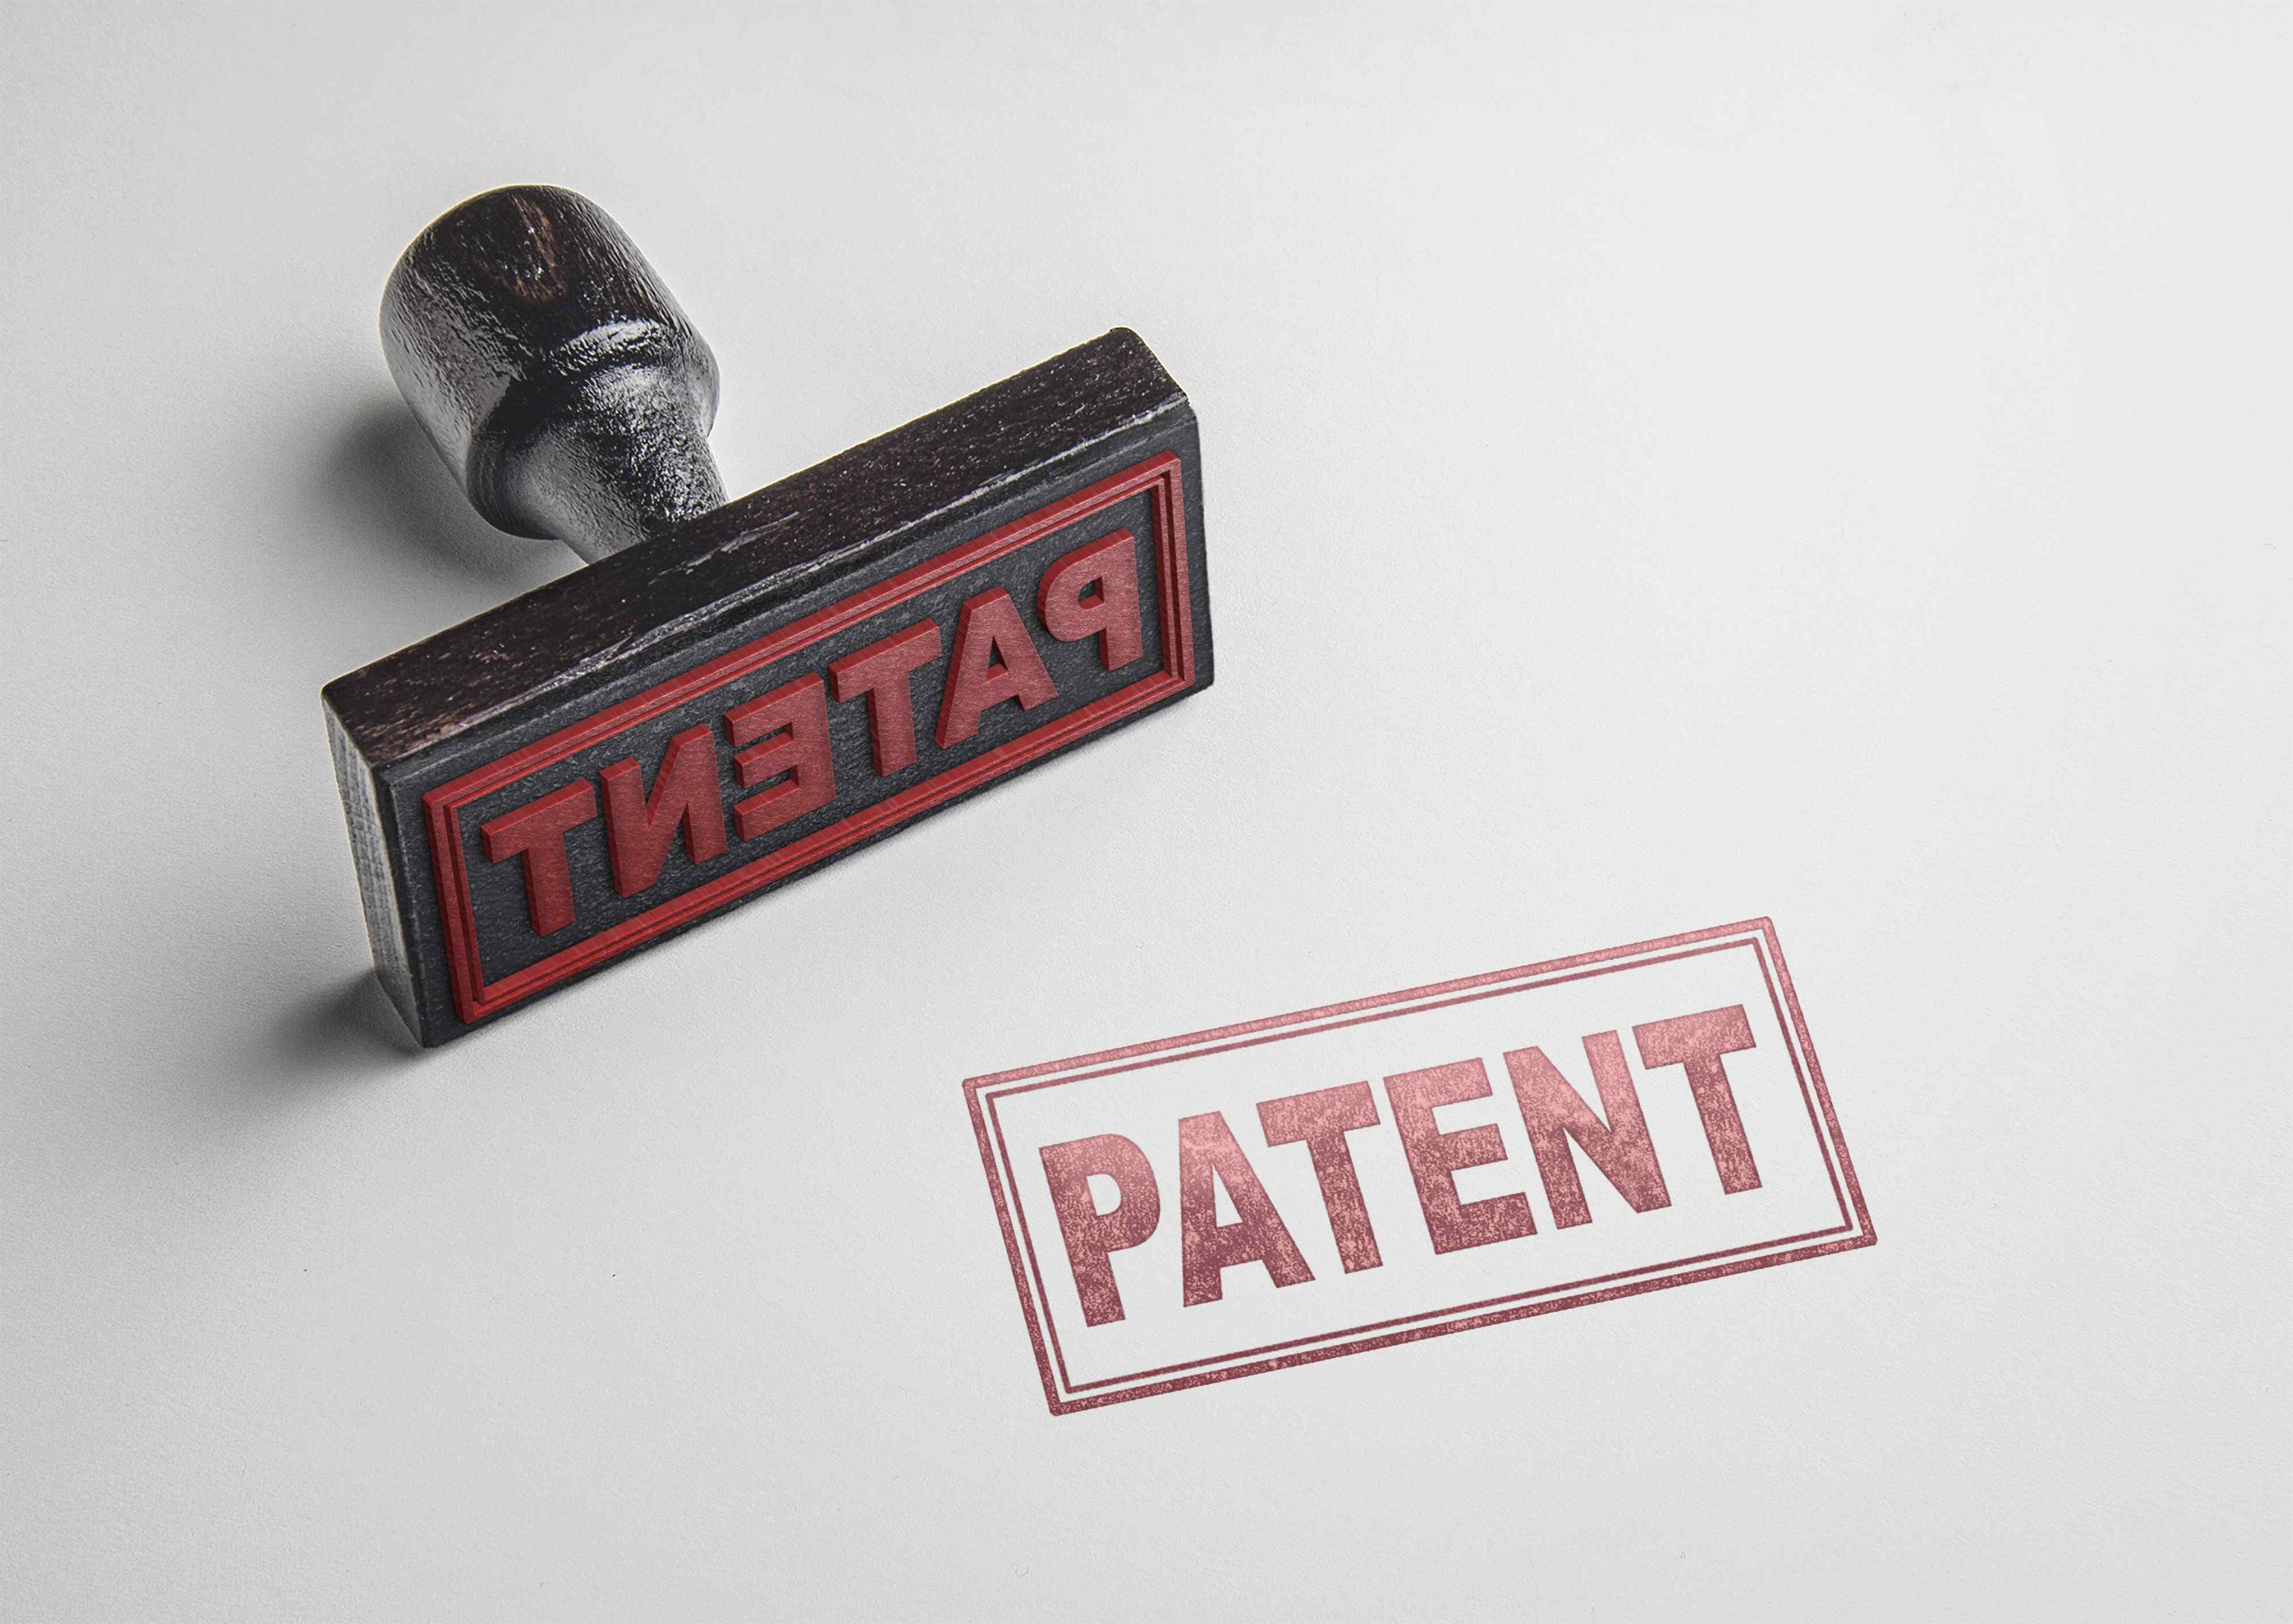 Generic picture showing patent